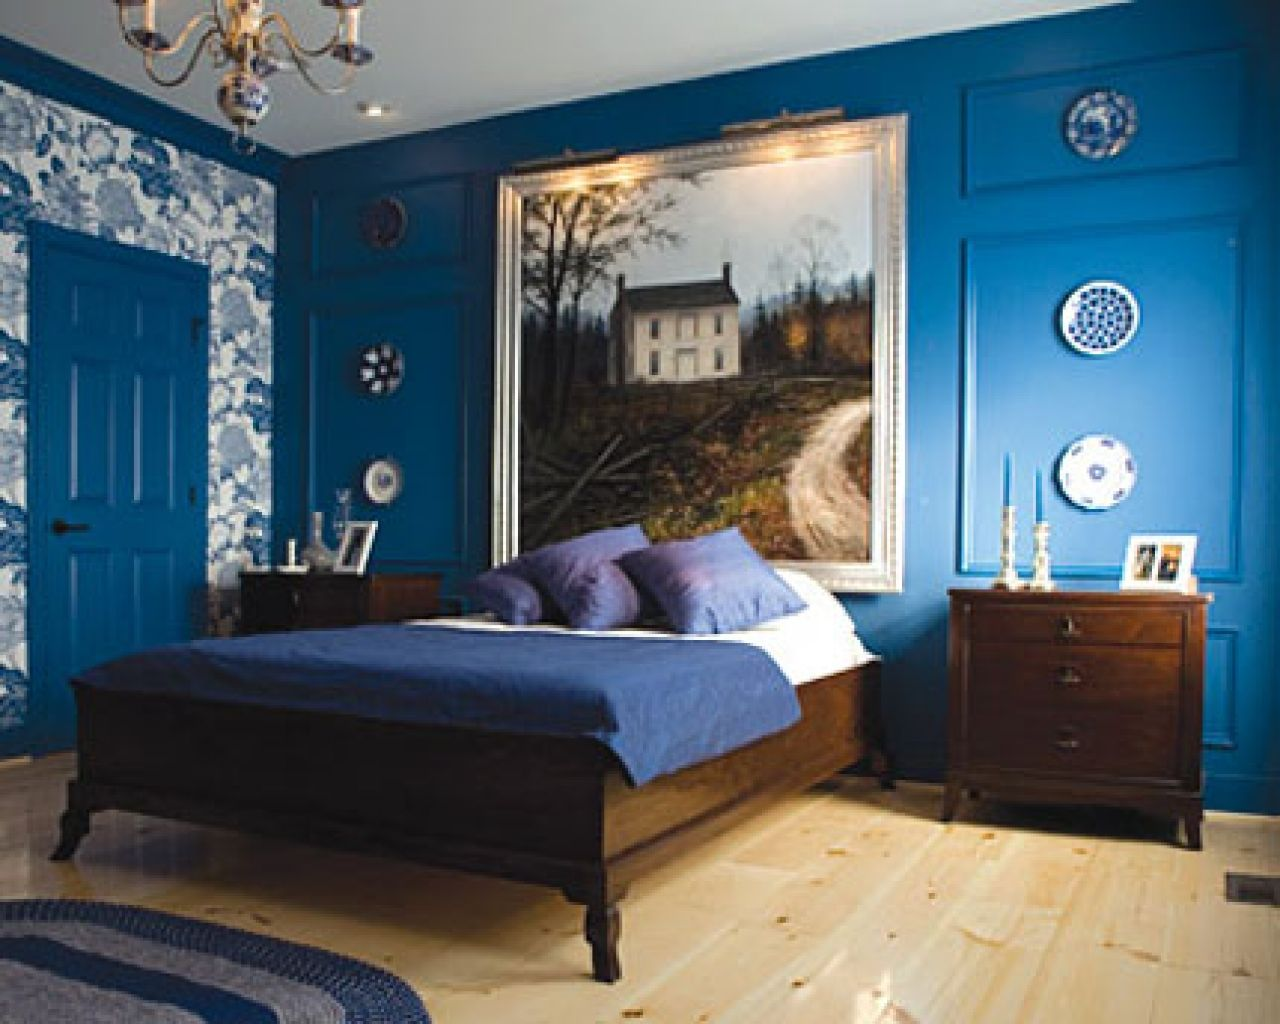 Bedroom painting design ideas pretty natural bedroom paint ideas cute blue wall idp interior - Bedroom painting designs ...